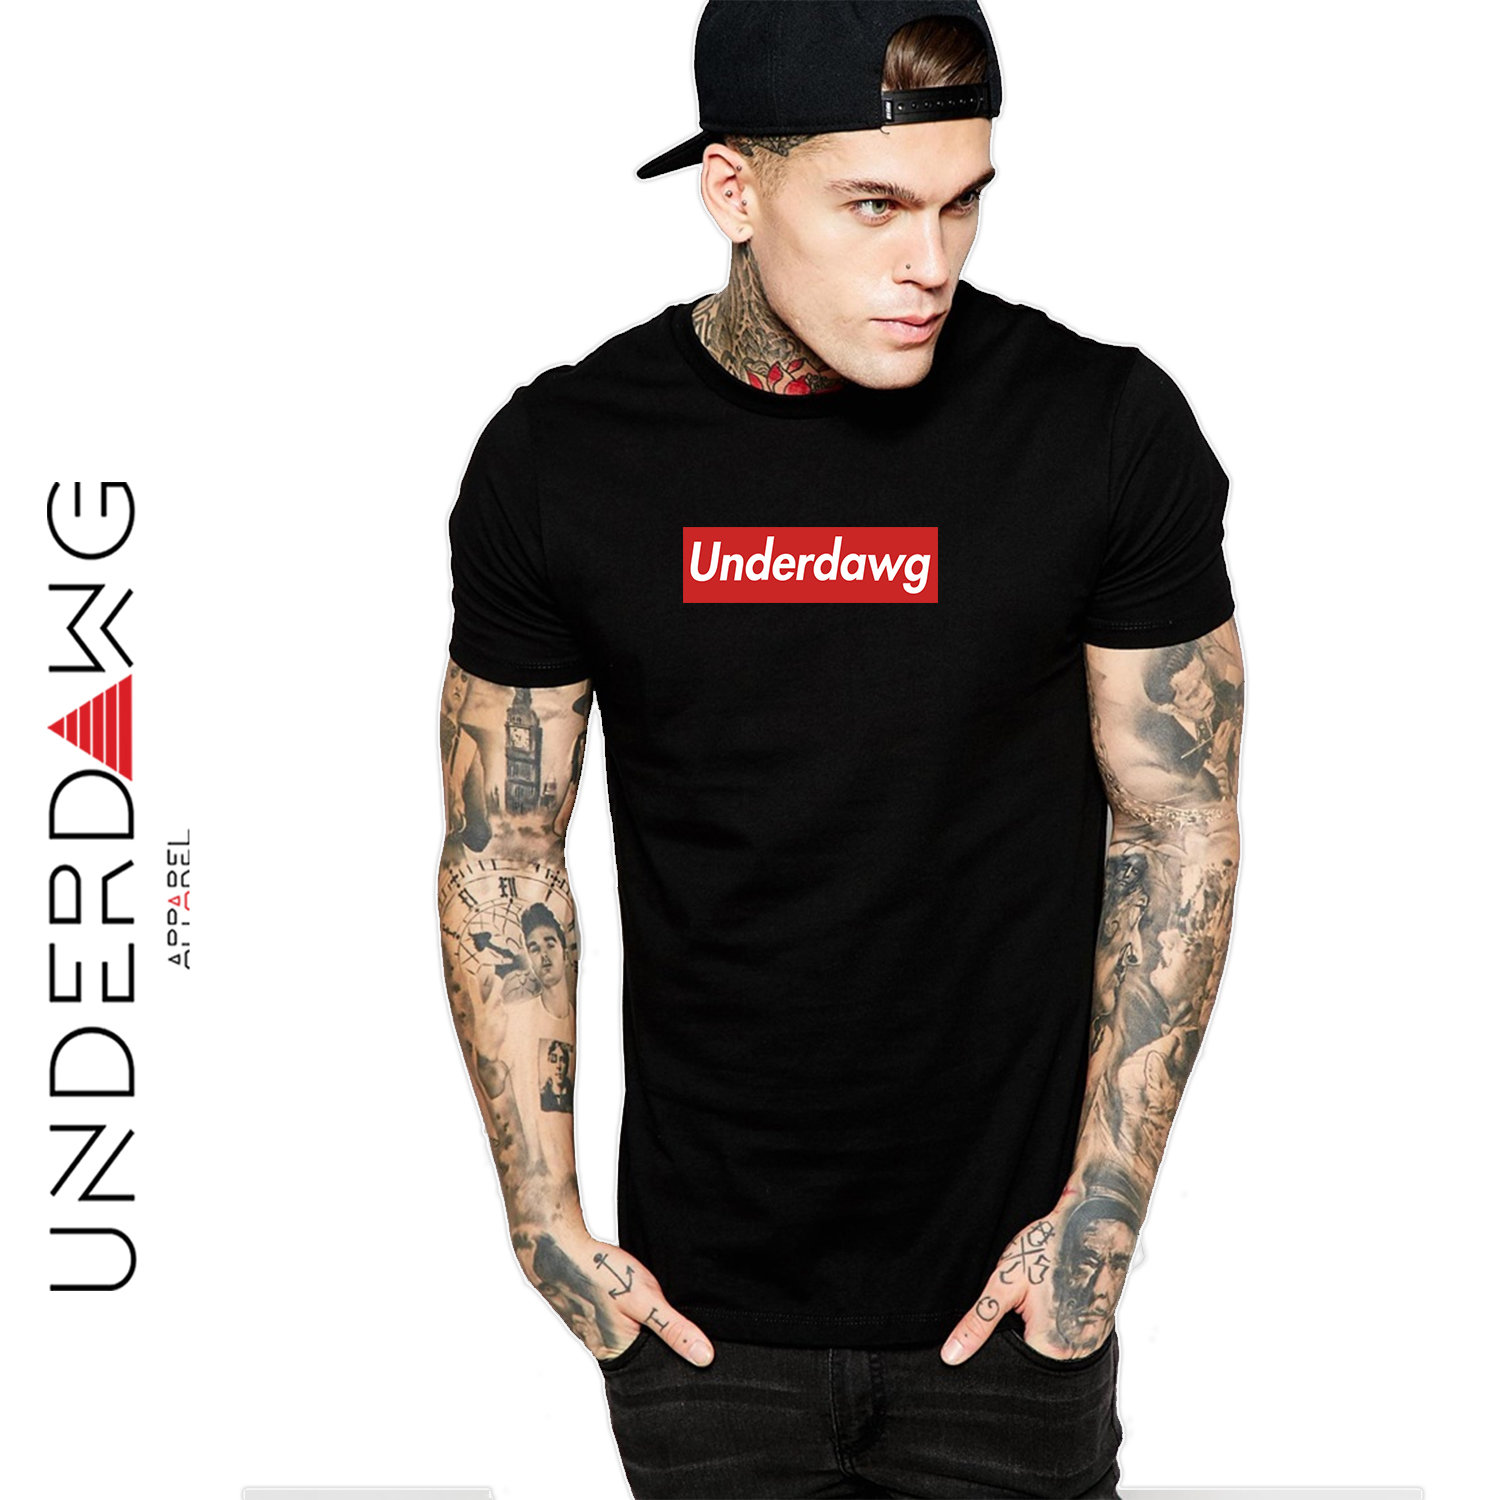 Under Dawg Statement Short-Sleeve T-Shirt 00040